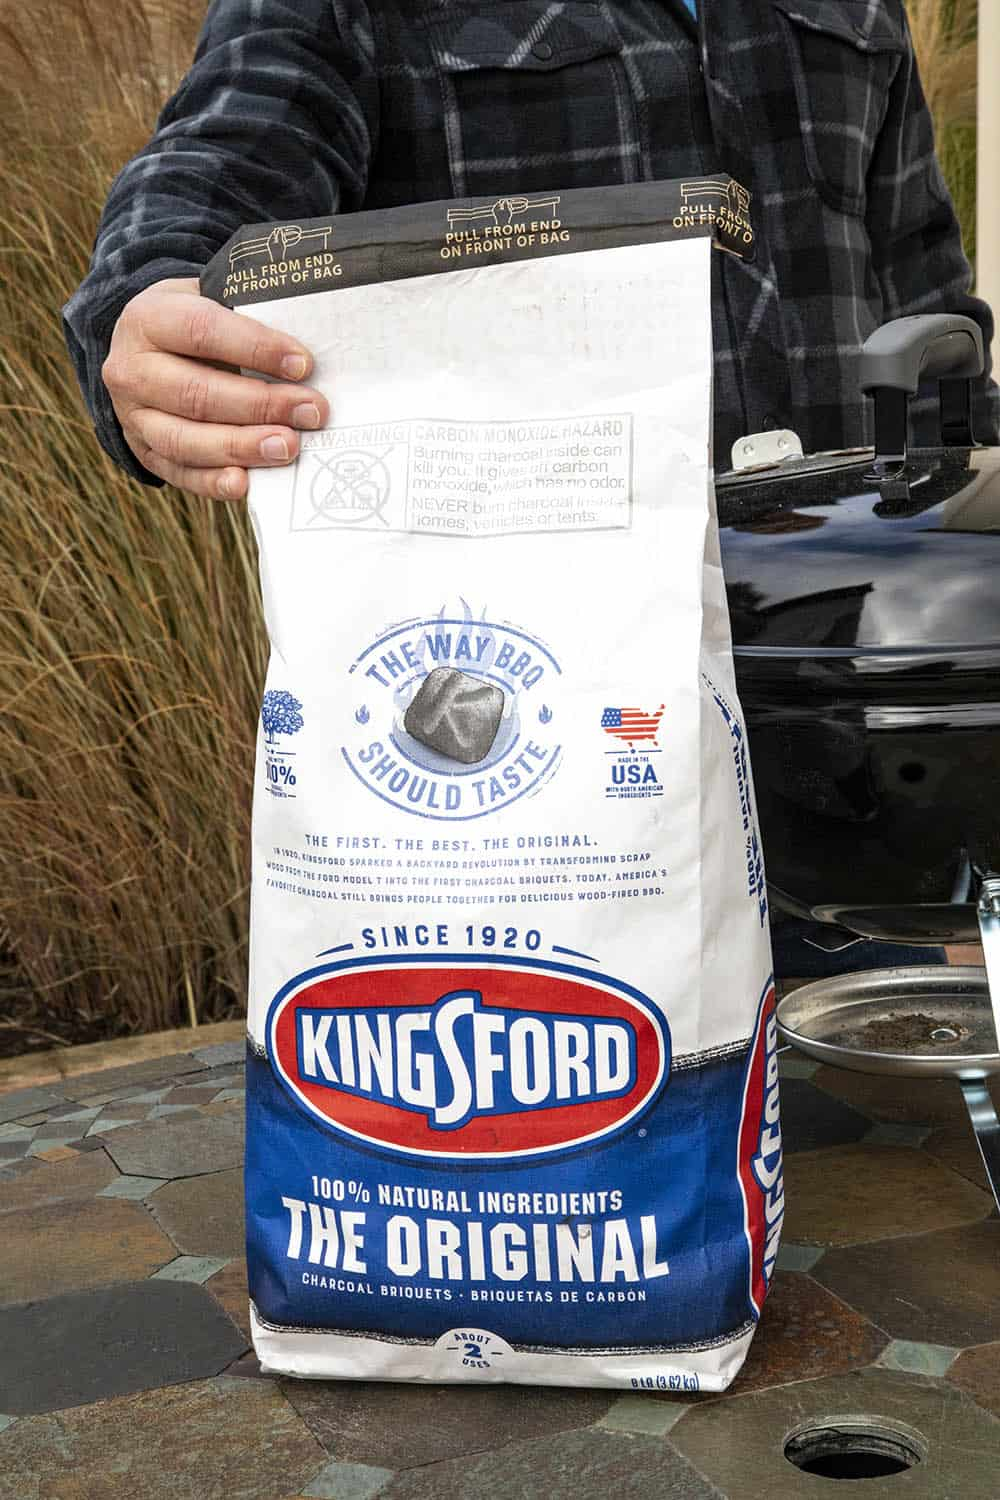 A bag of Kingsford Charcoal